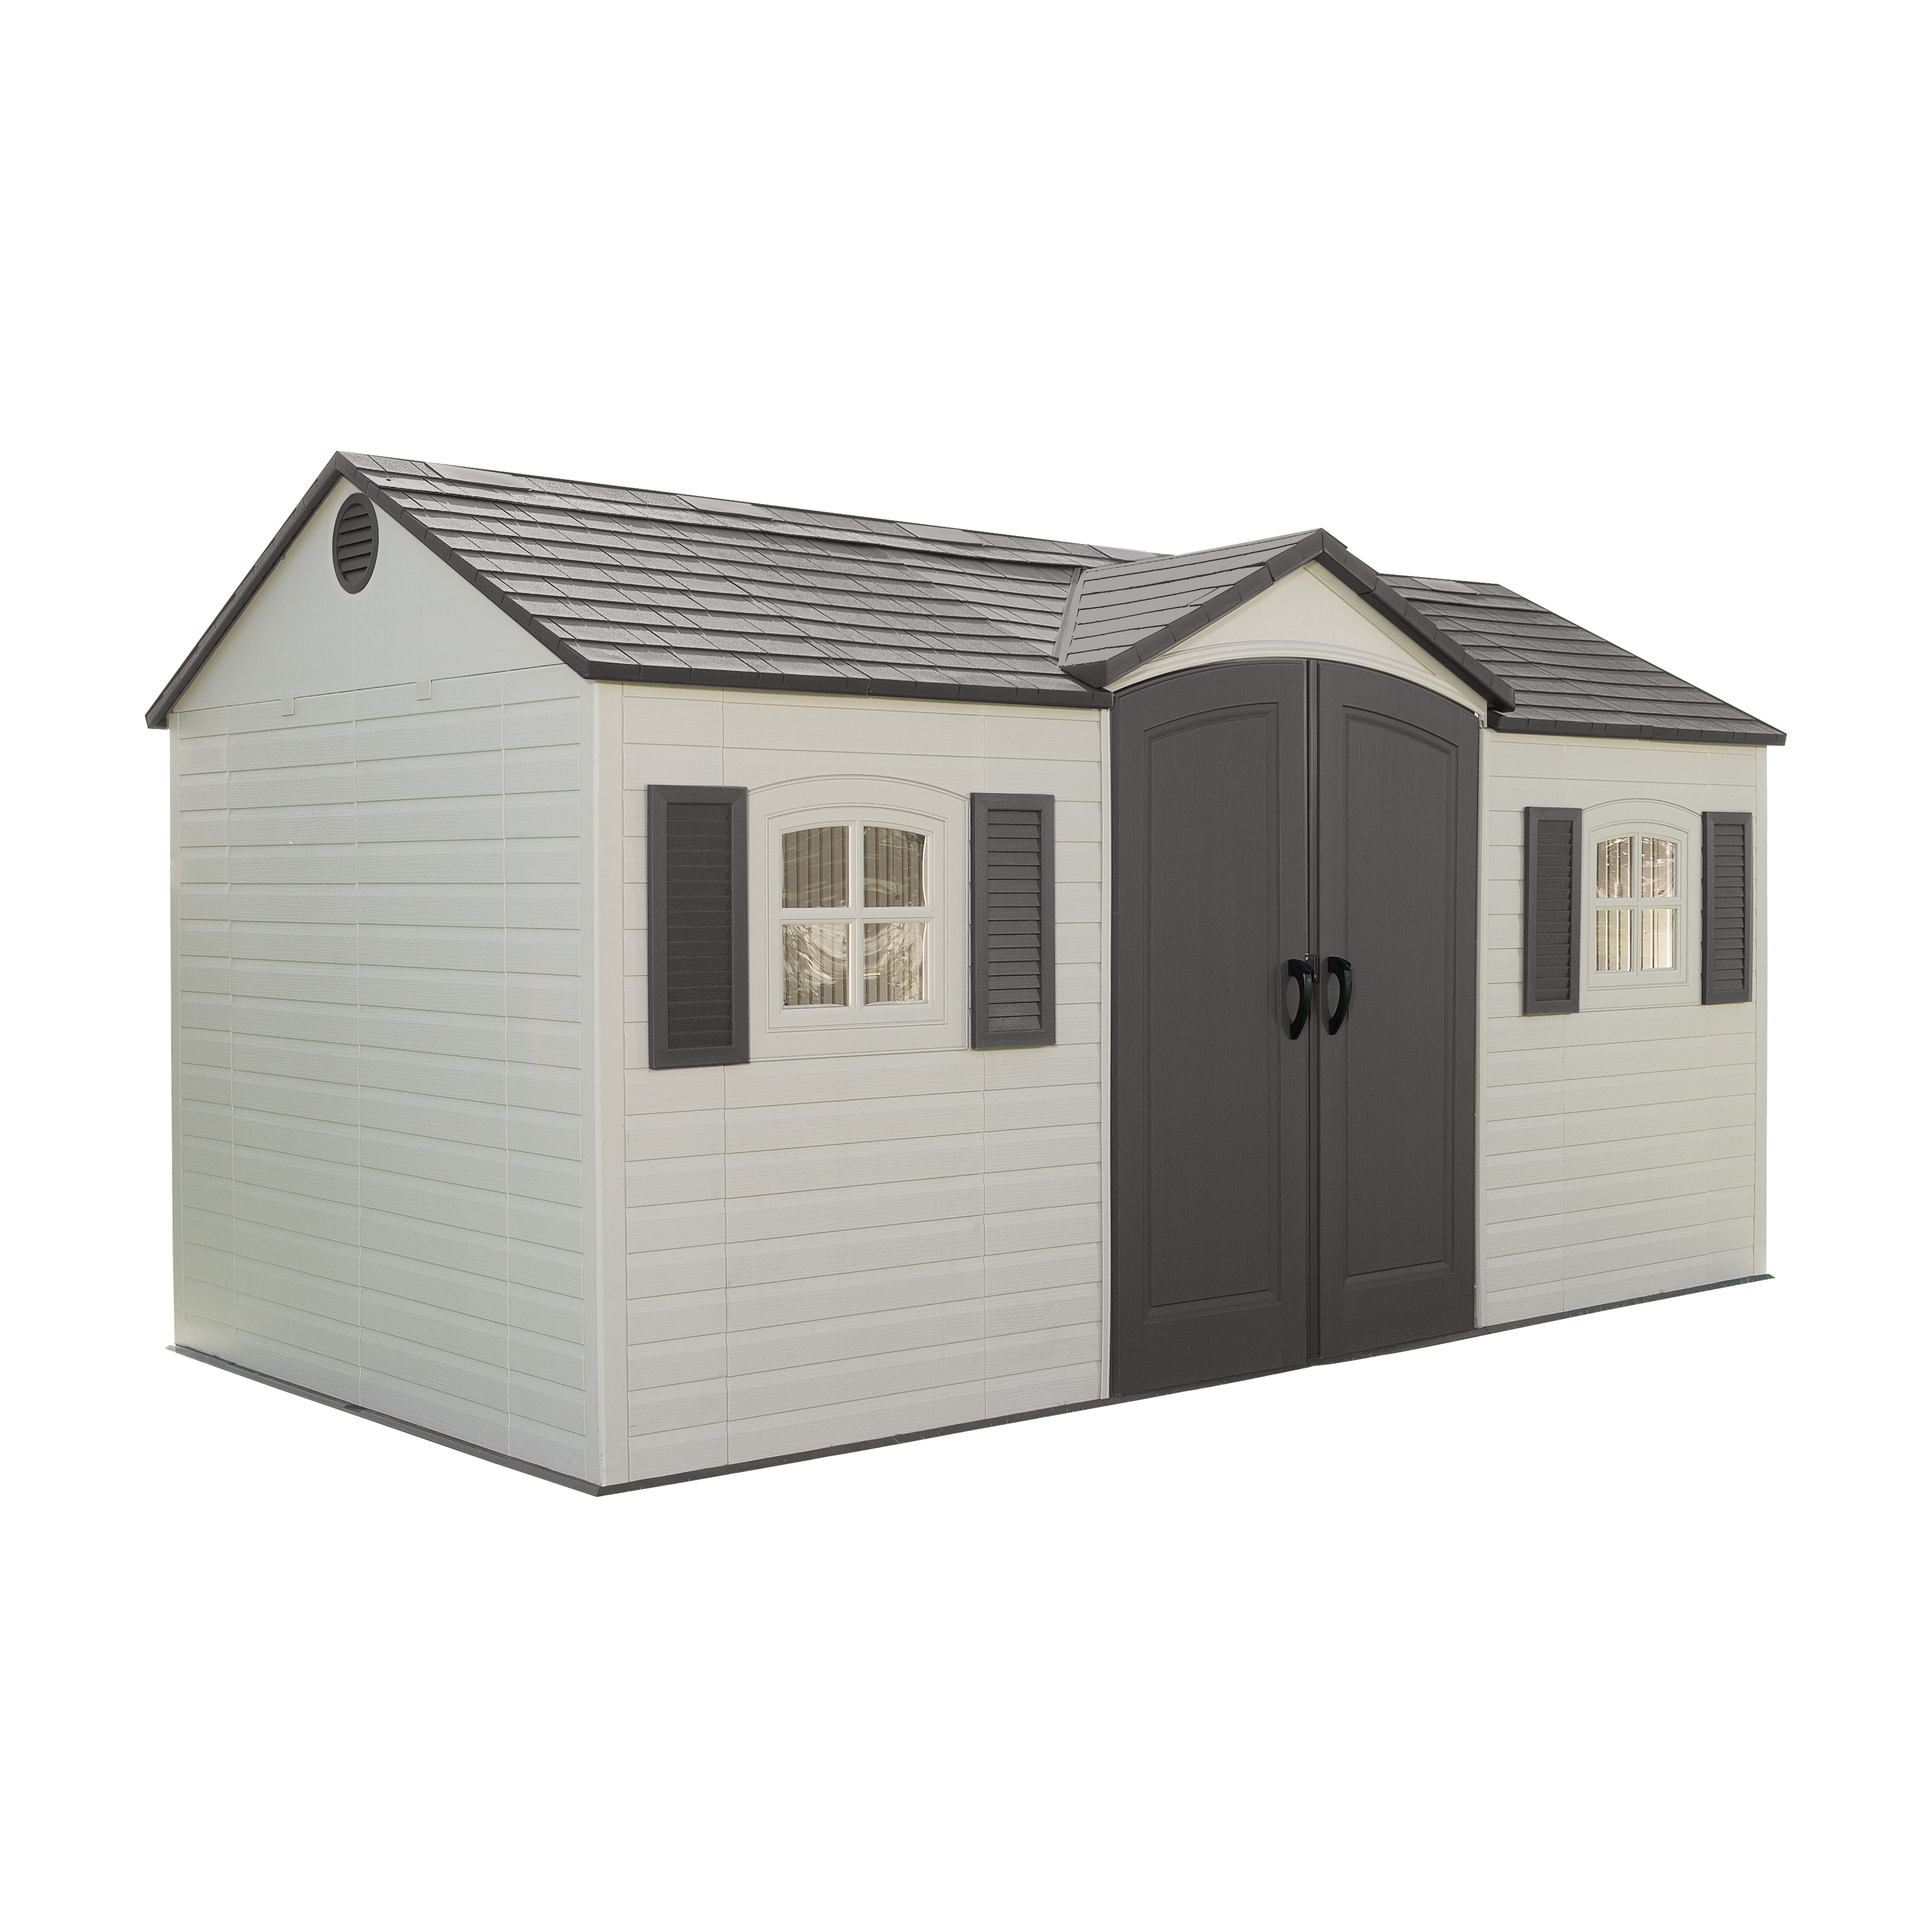 Lifetime Side Entry 14 ft. 8 in. W x 7 ft. 9 in. D Plastic Storage Shed &  Reviews | Wayfair